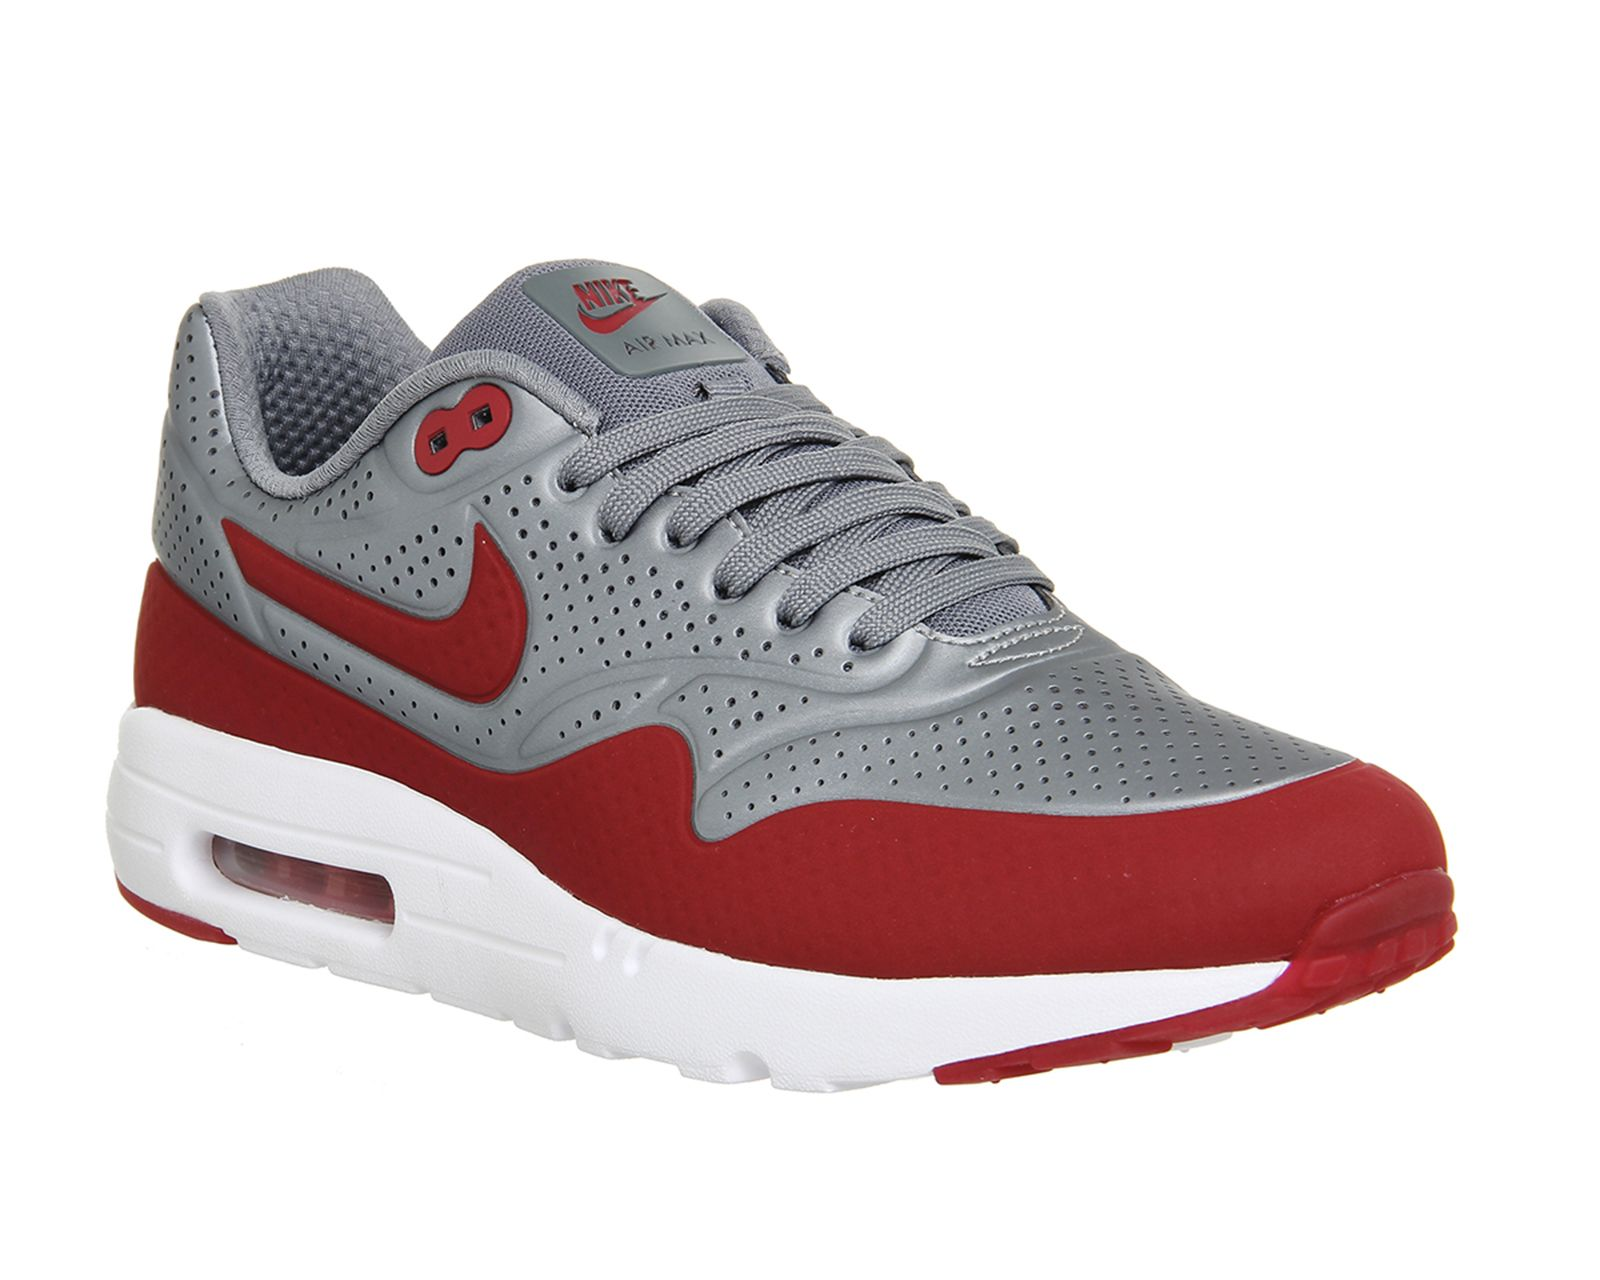 Nike Air Max 1 Ultra Moire Silver Uni Red His trainers